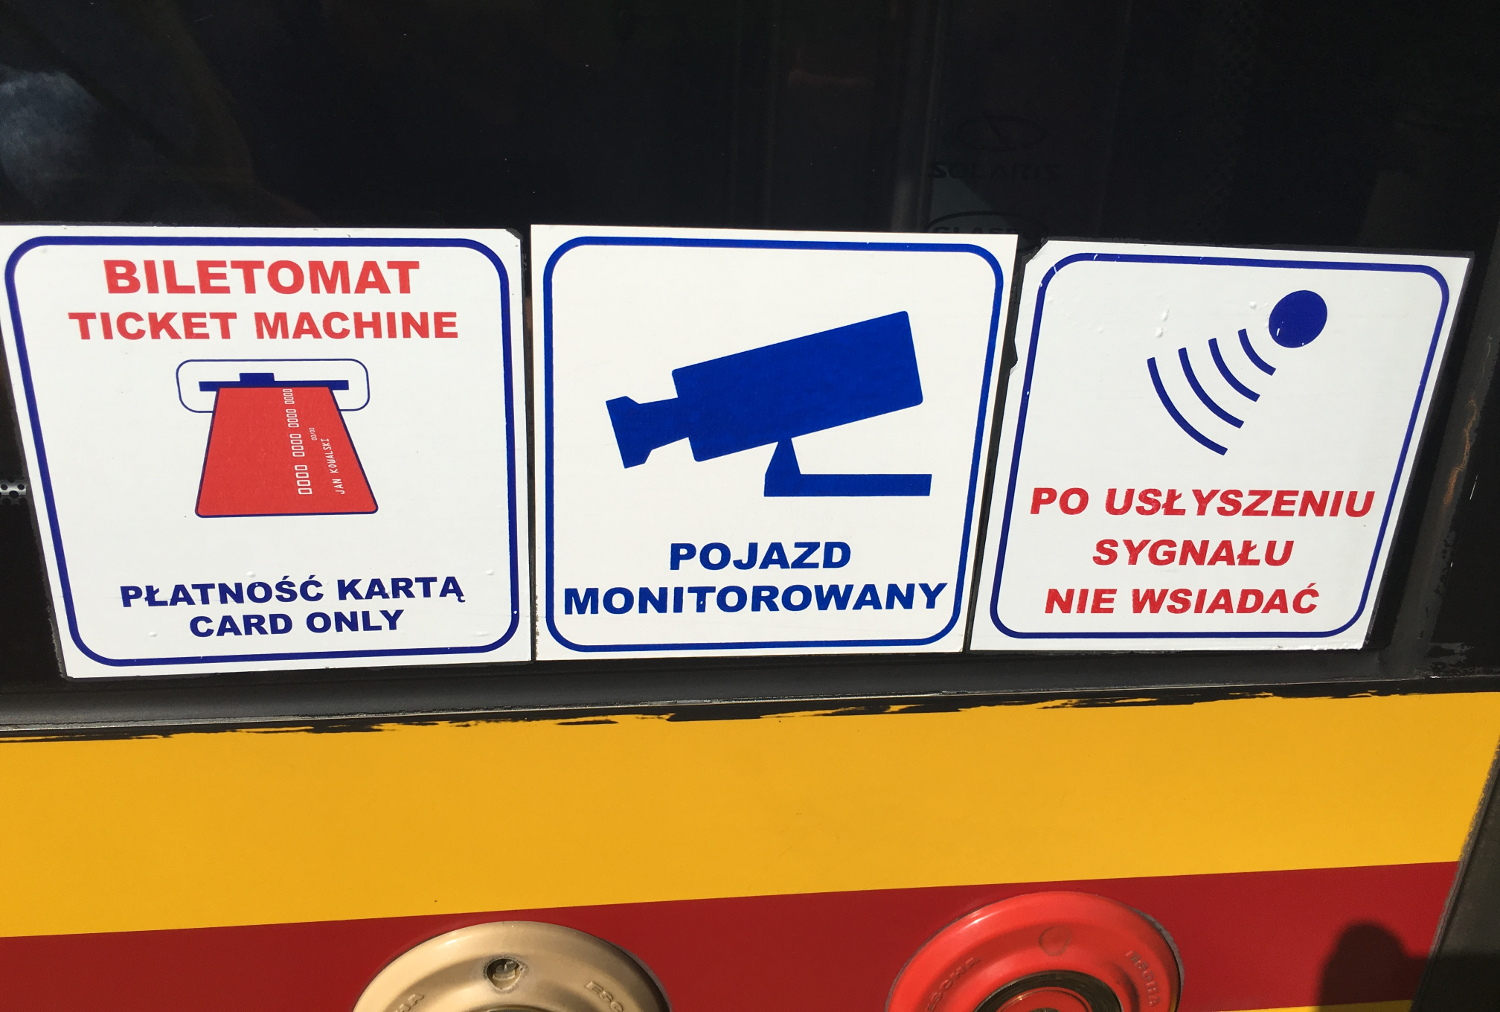 Stickers, like these, are on the side of the bus, near the middle doors. The first sticker (on the left) indicates that there's a ticket machine on-board.